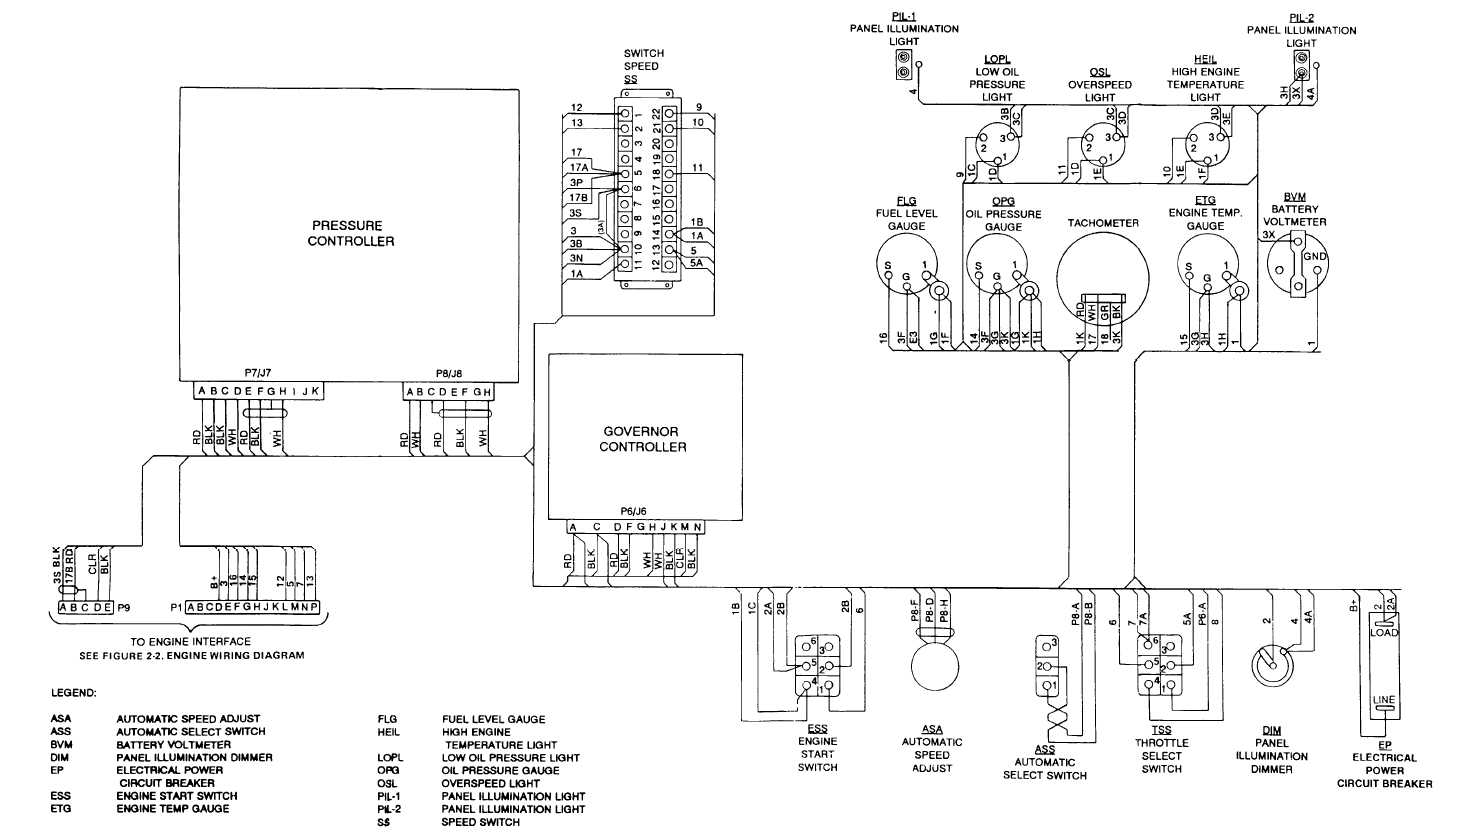 Figure 2 1 control panel wiring diagram sheet 1 of 4 control panel wiring diagram sheet 1 of 4 asfbconference2016 Gallery